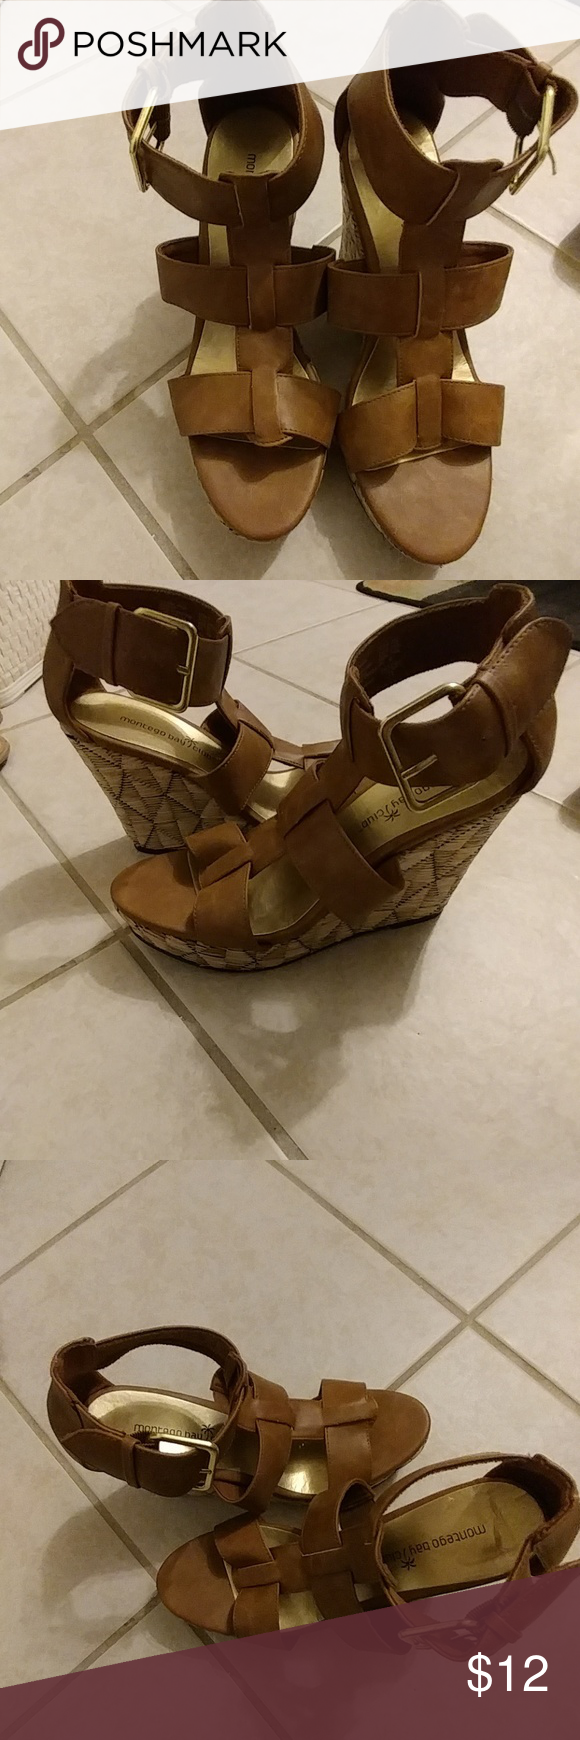 Brown wedges These have been worn once. They have about a 4 inch heel and a 1 inch platform Shoes Wedges